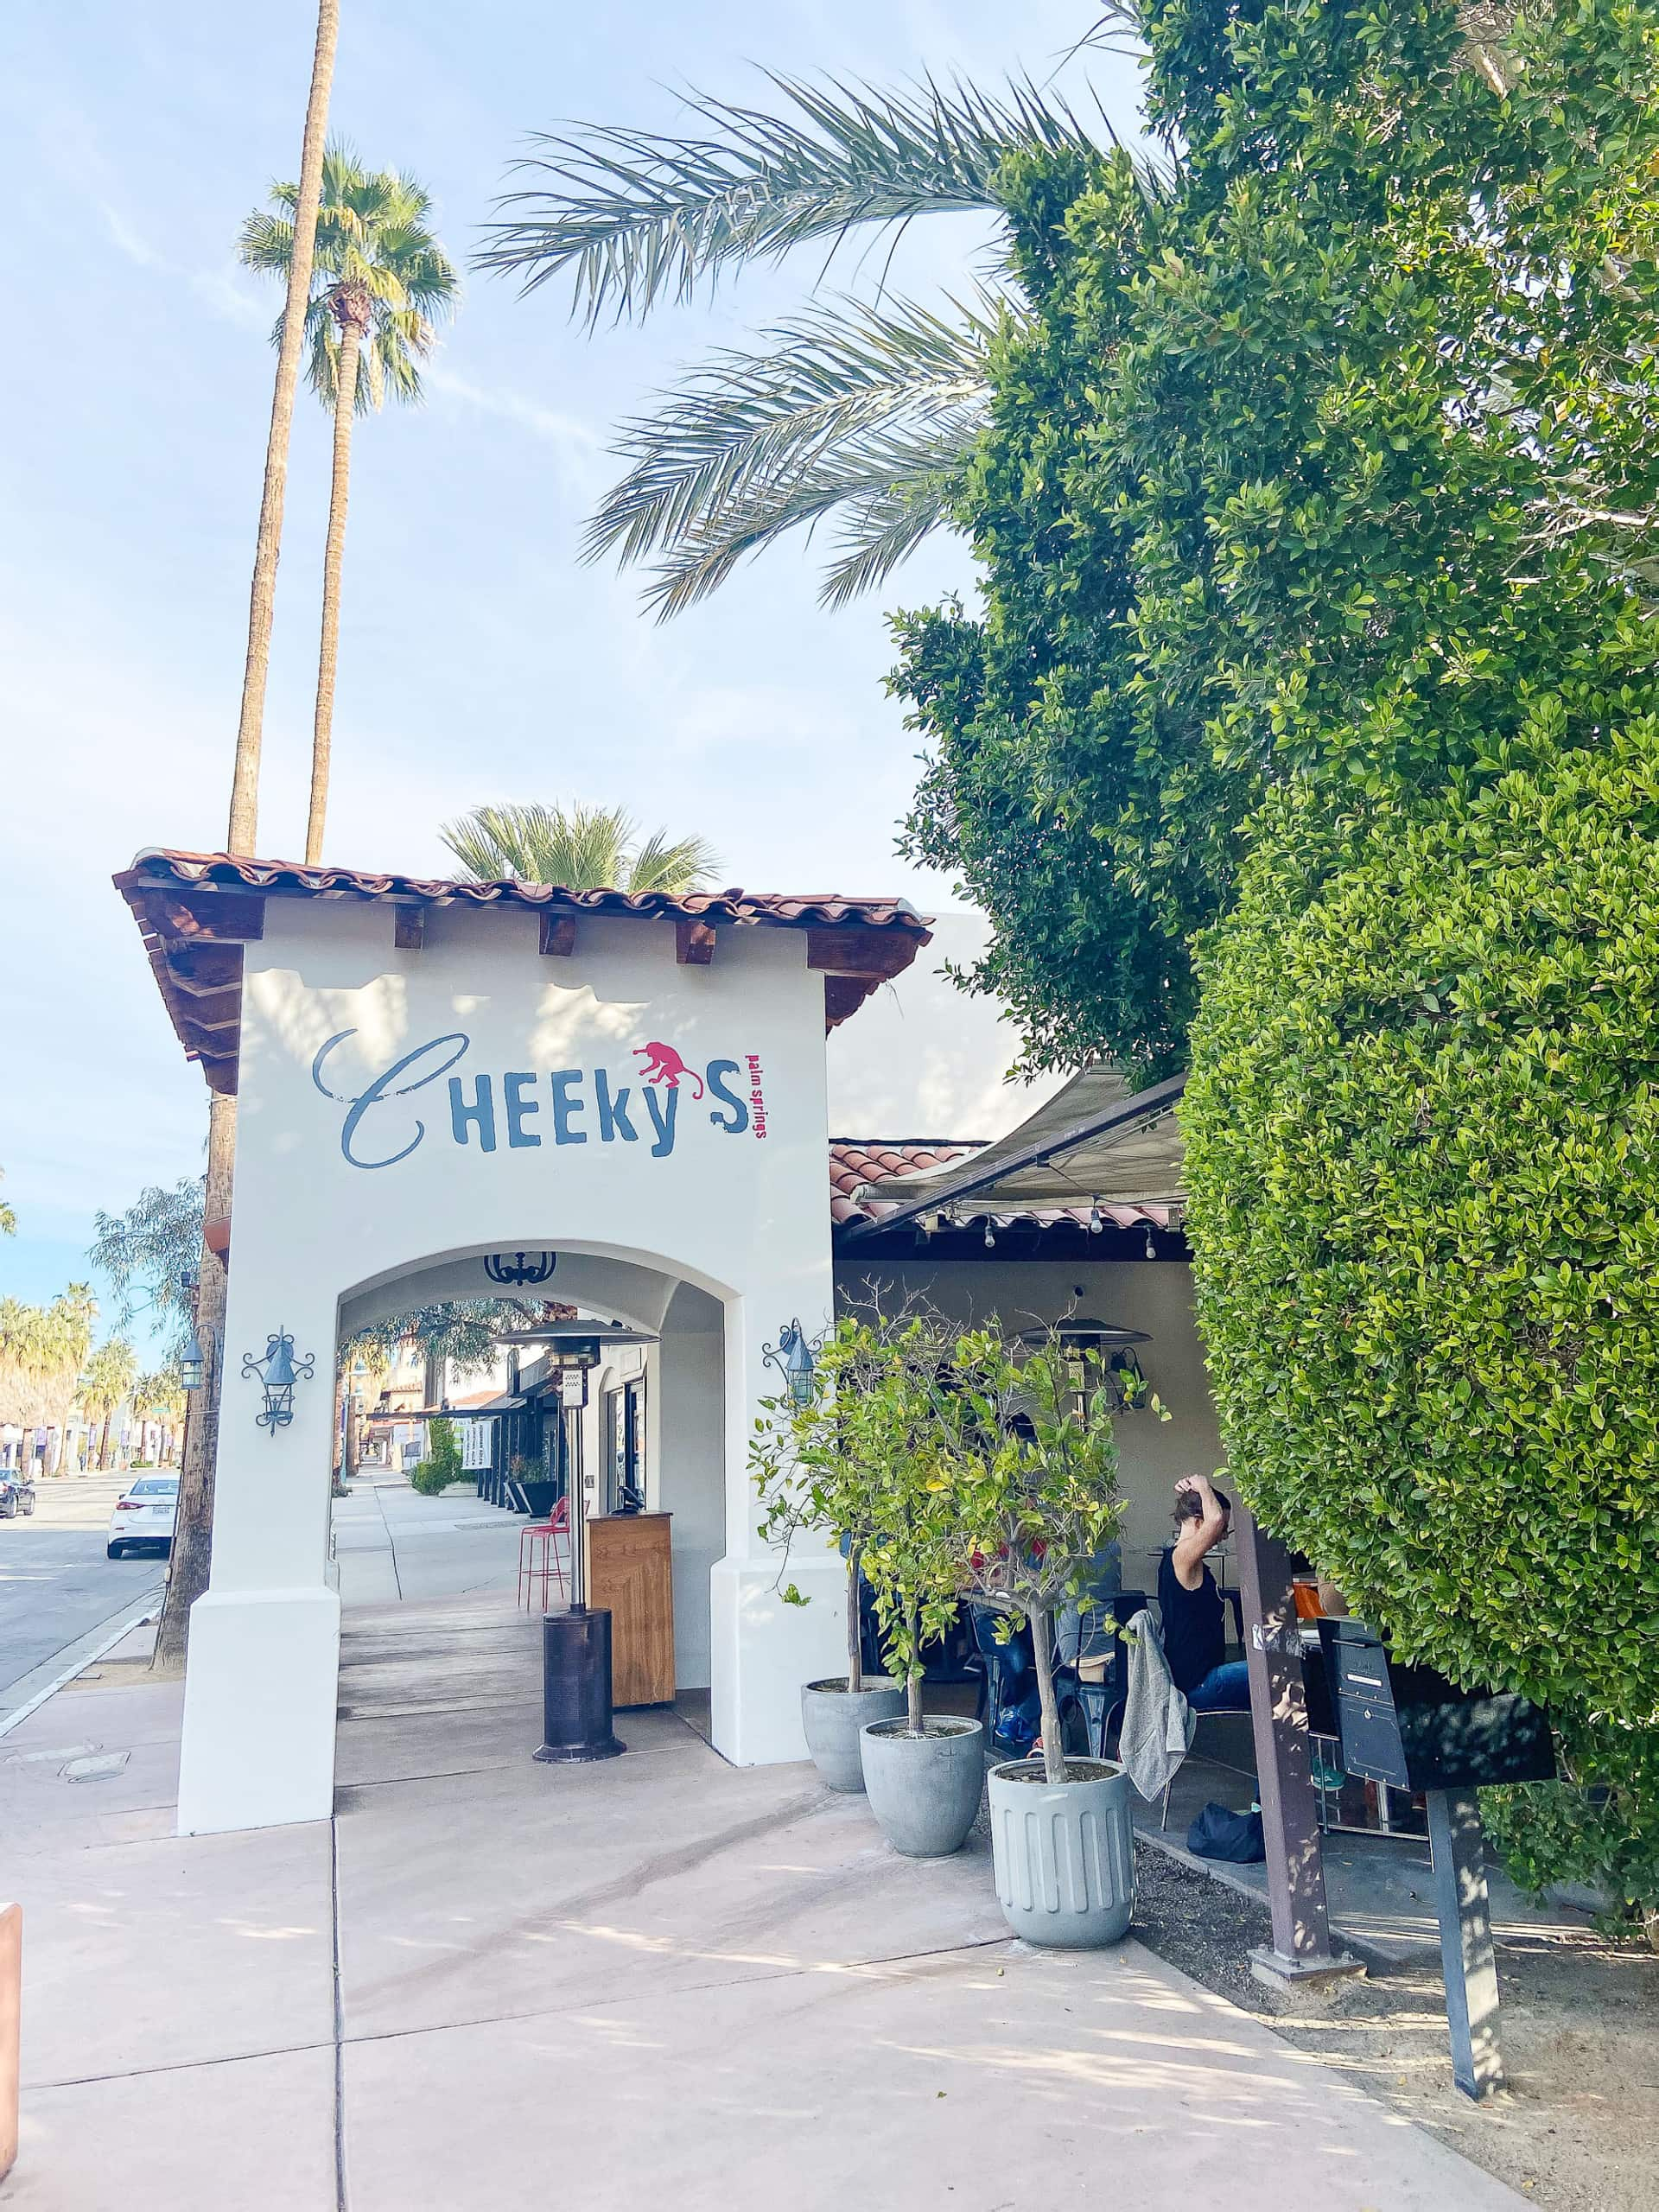 cheeky's in palm springs